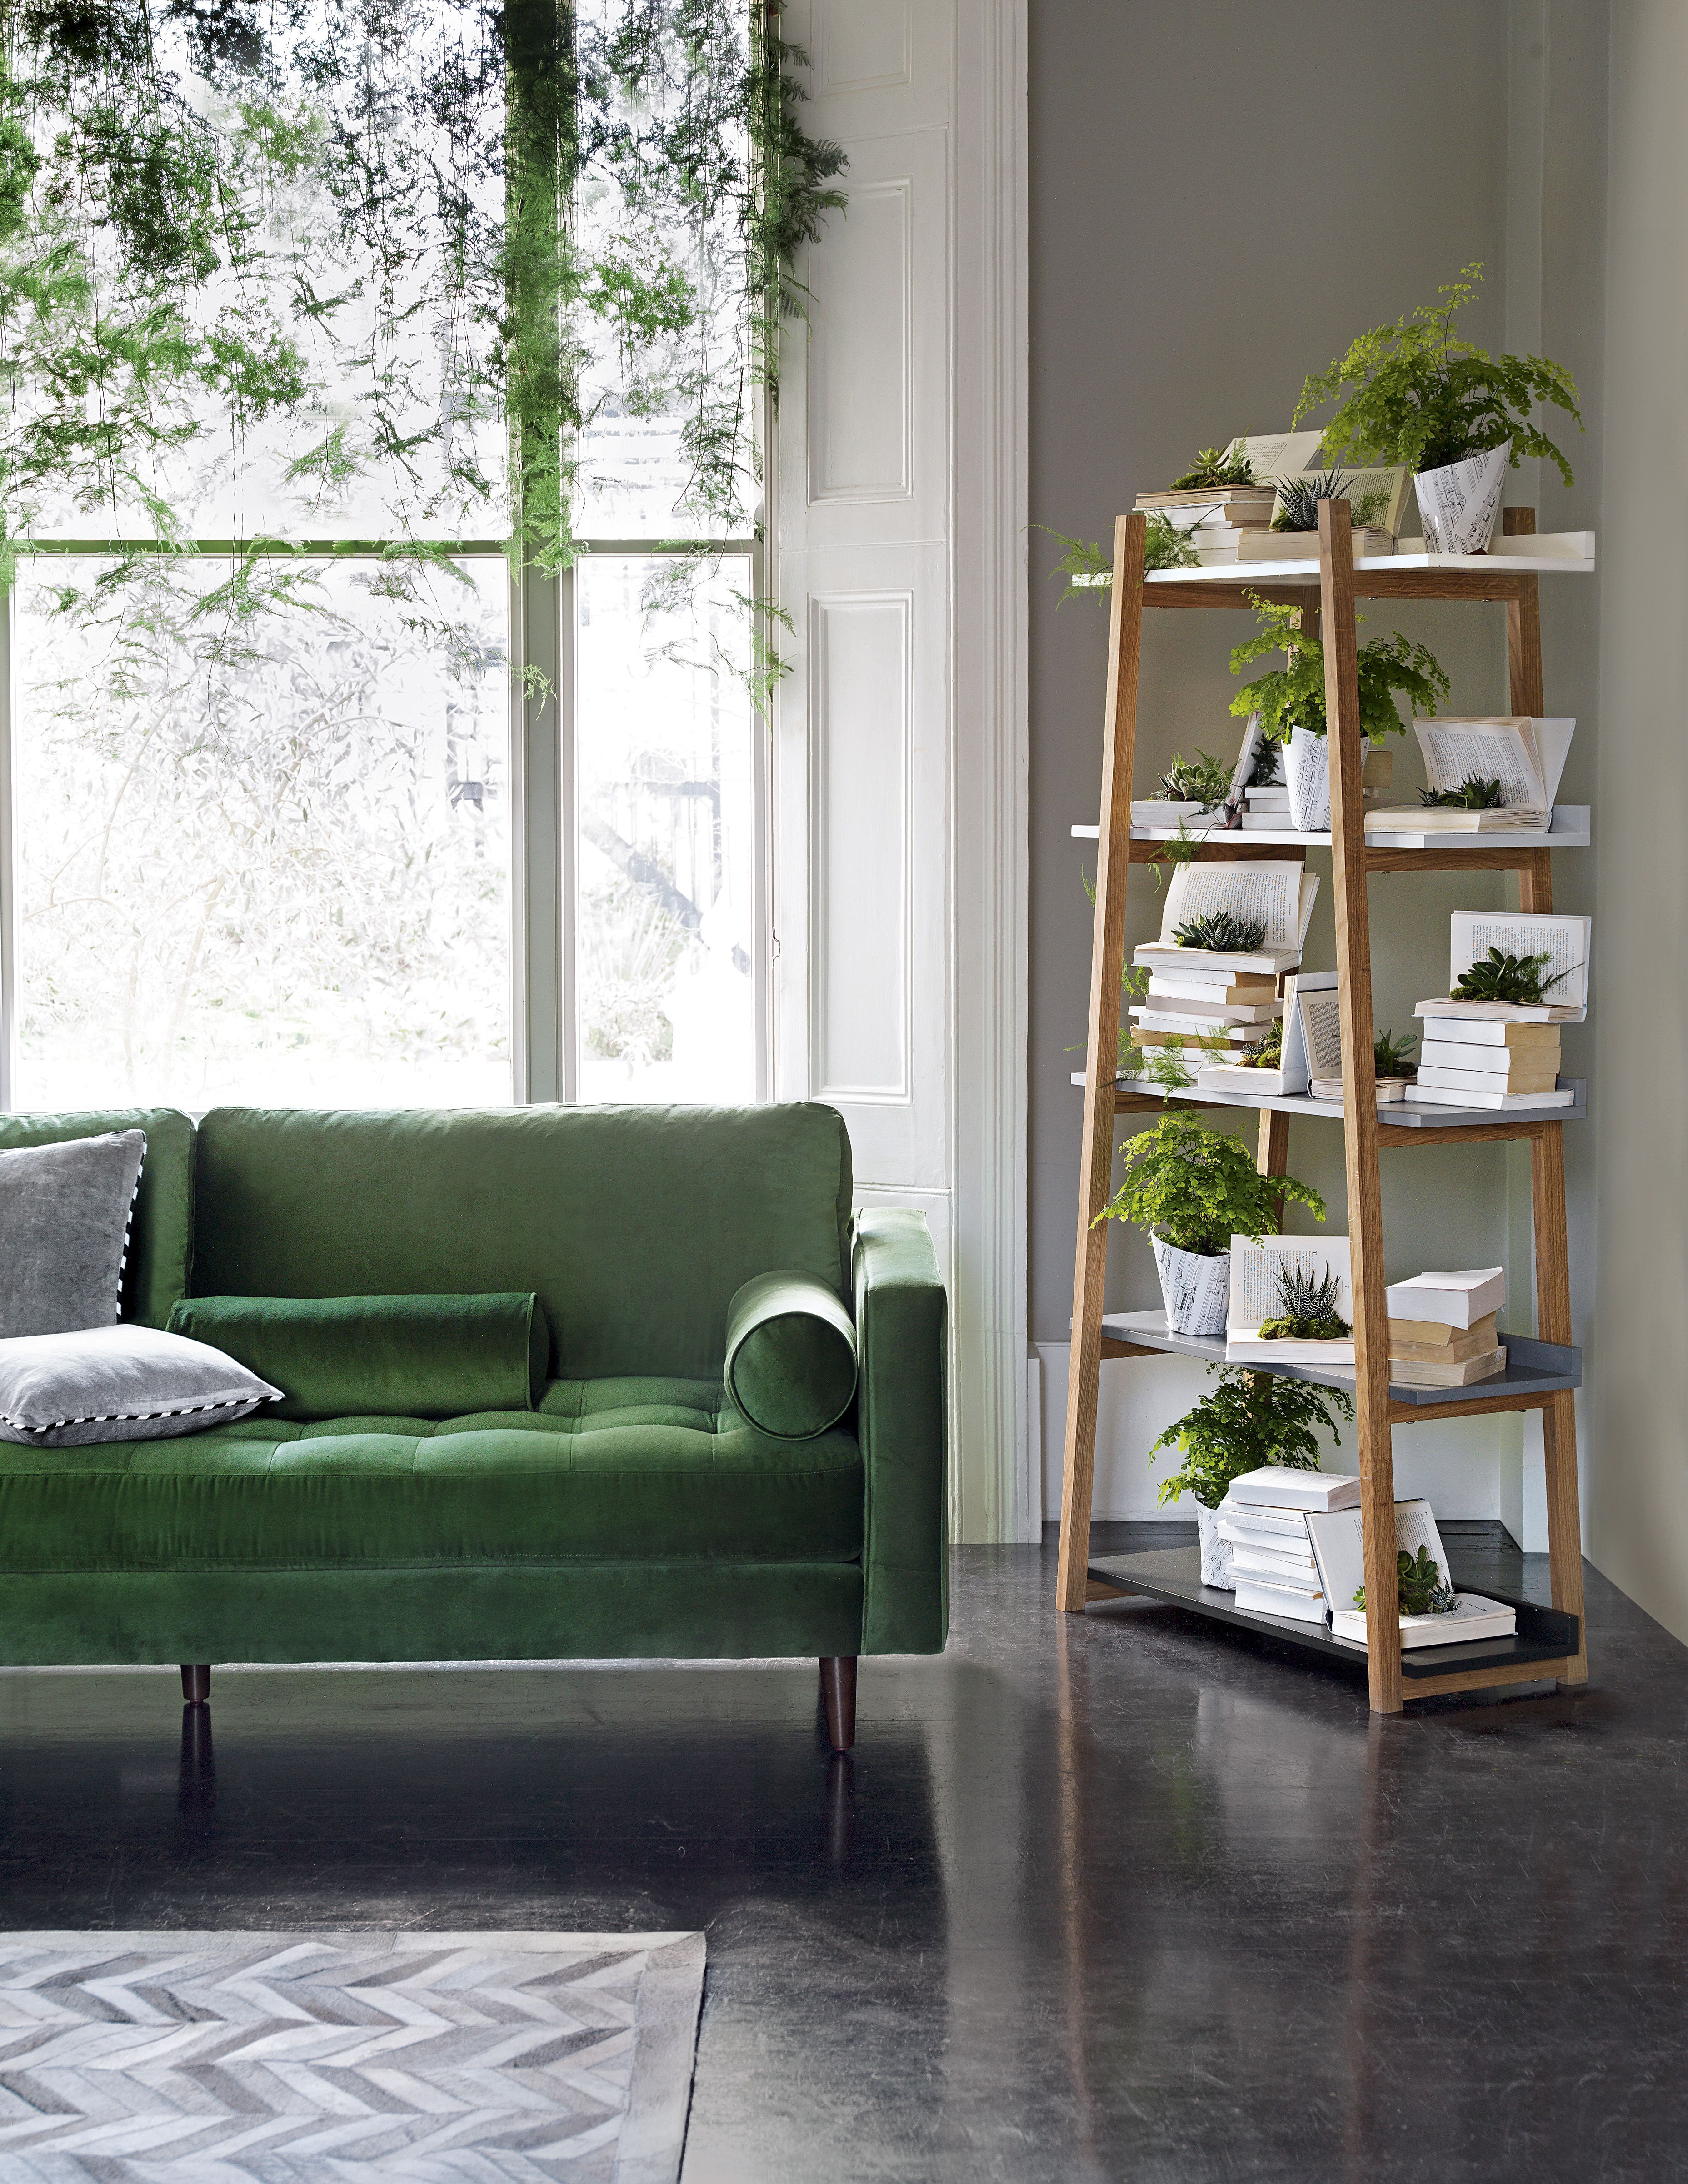 The Scott 3 seater sofa blends a sleek silhouette with a buttoned seat cushion for a statement look. Upholstered in plush green velvet for an additional layer of sophistication. Made for lounging with a deep, sprung seat and feather-fibre mix cushioning. Fresh comfort awaits.